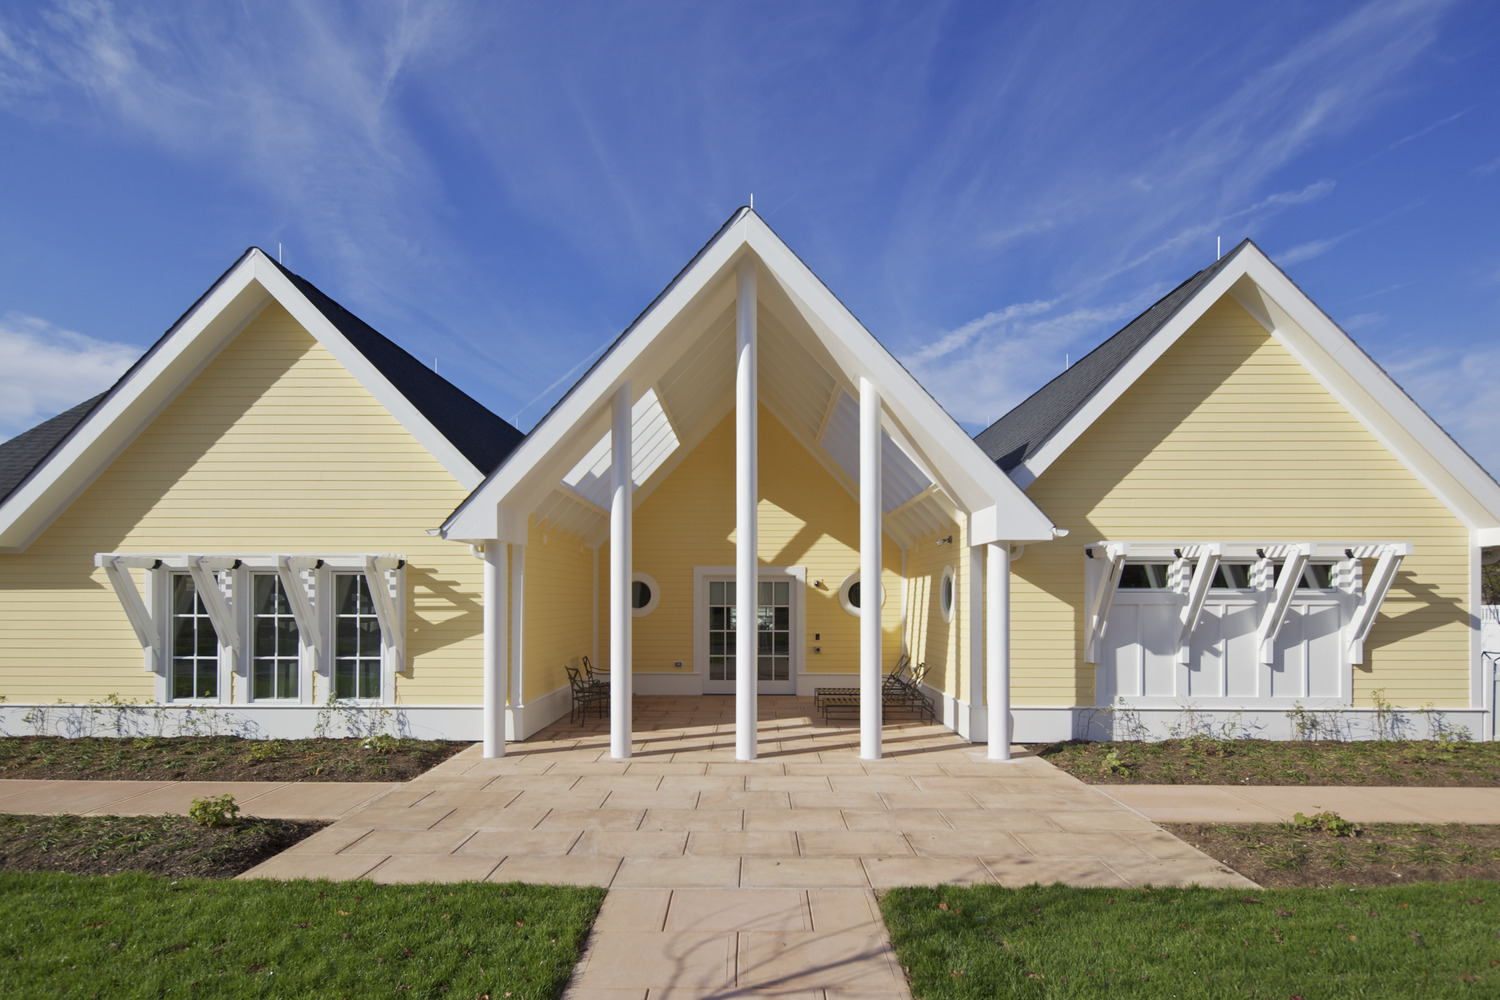 CBG builds Wounded Warrior Home Project, a Two Innovative Prototype Homes for Wounded Warriors at Fort Belvoir in Fort Belvoir, VA - Image #8